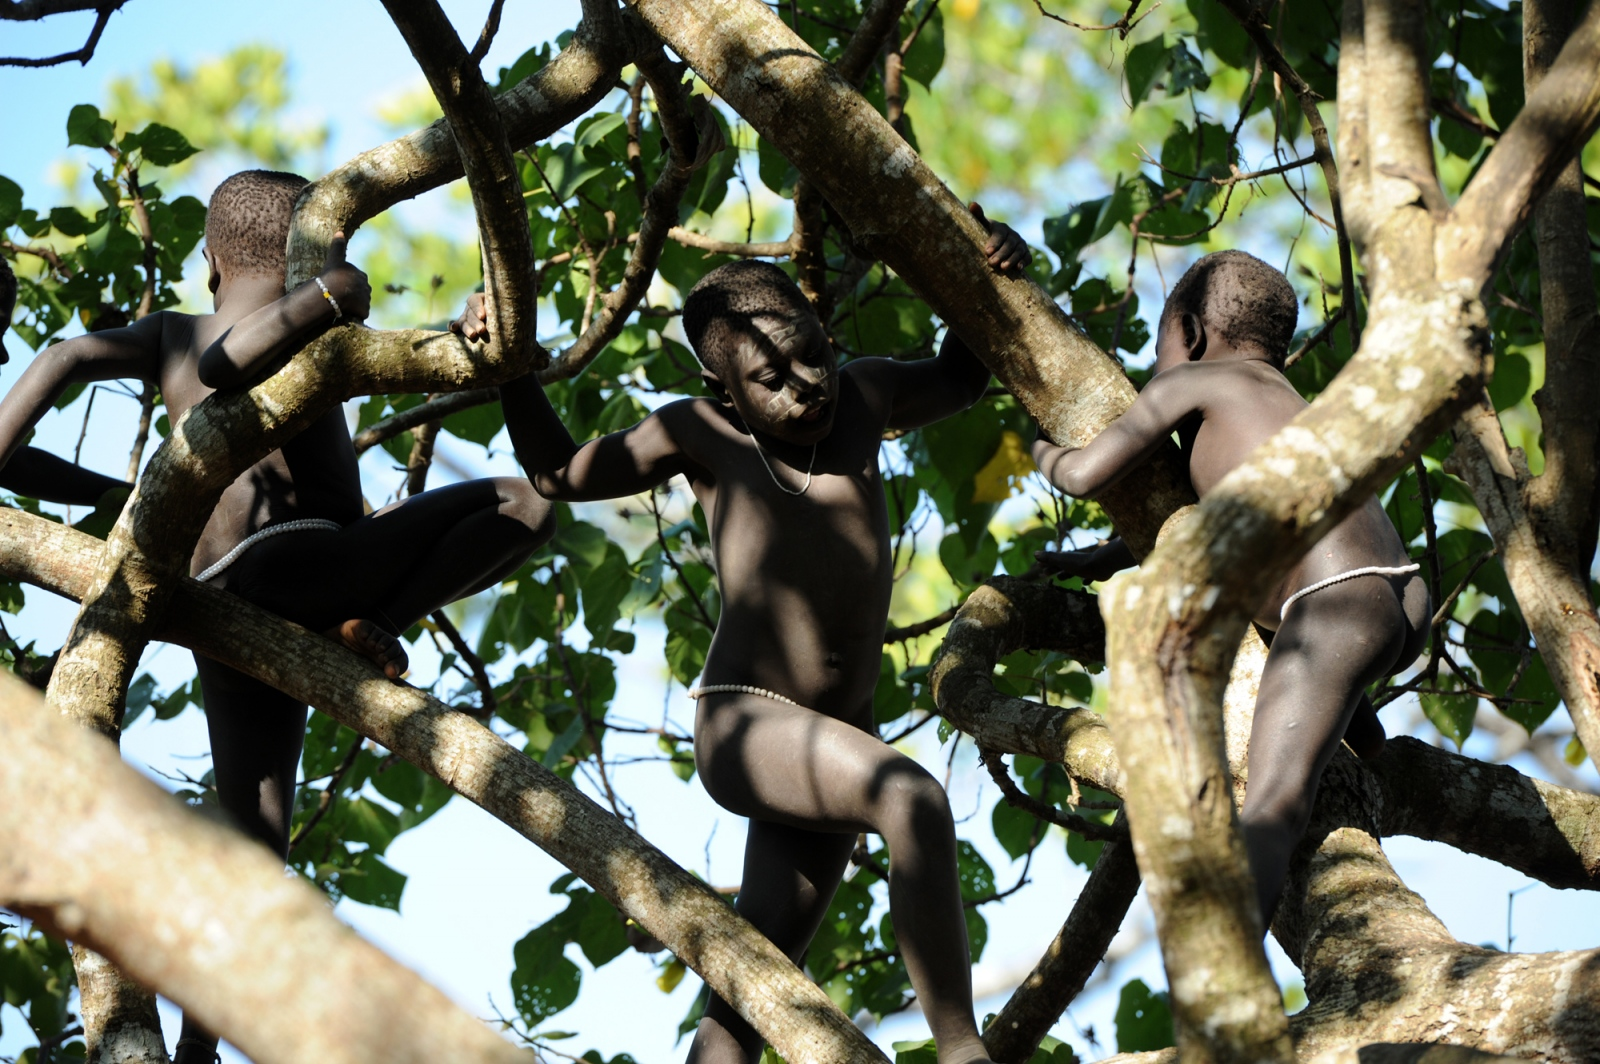 Art and Documentary Photography - Loading jarawa_beilvert_children_playing_in_a_tree.jpg